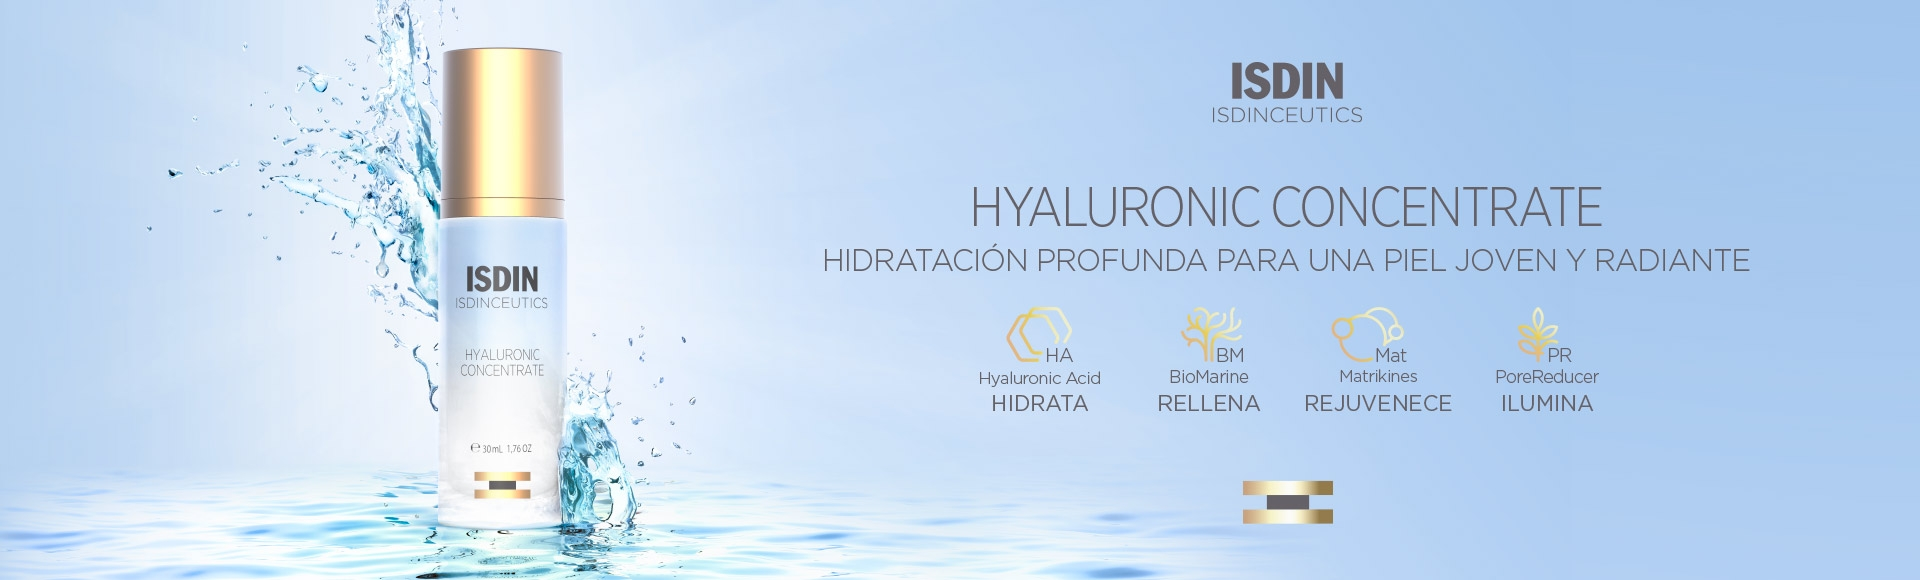 ISDINCEUTICS  Hyaluronic Concentrate Banner